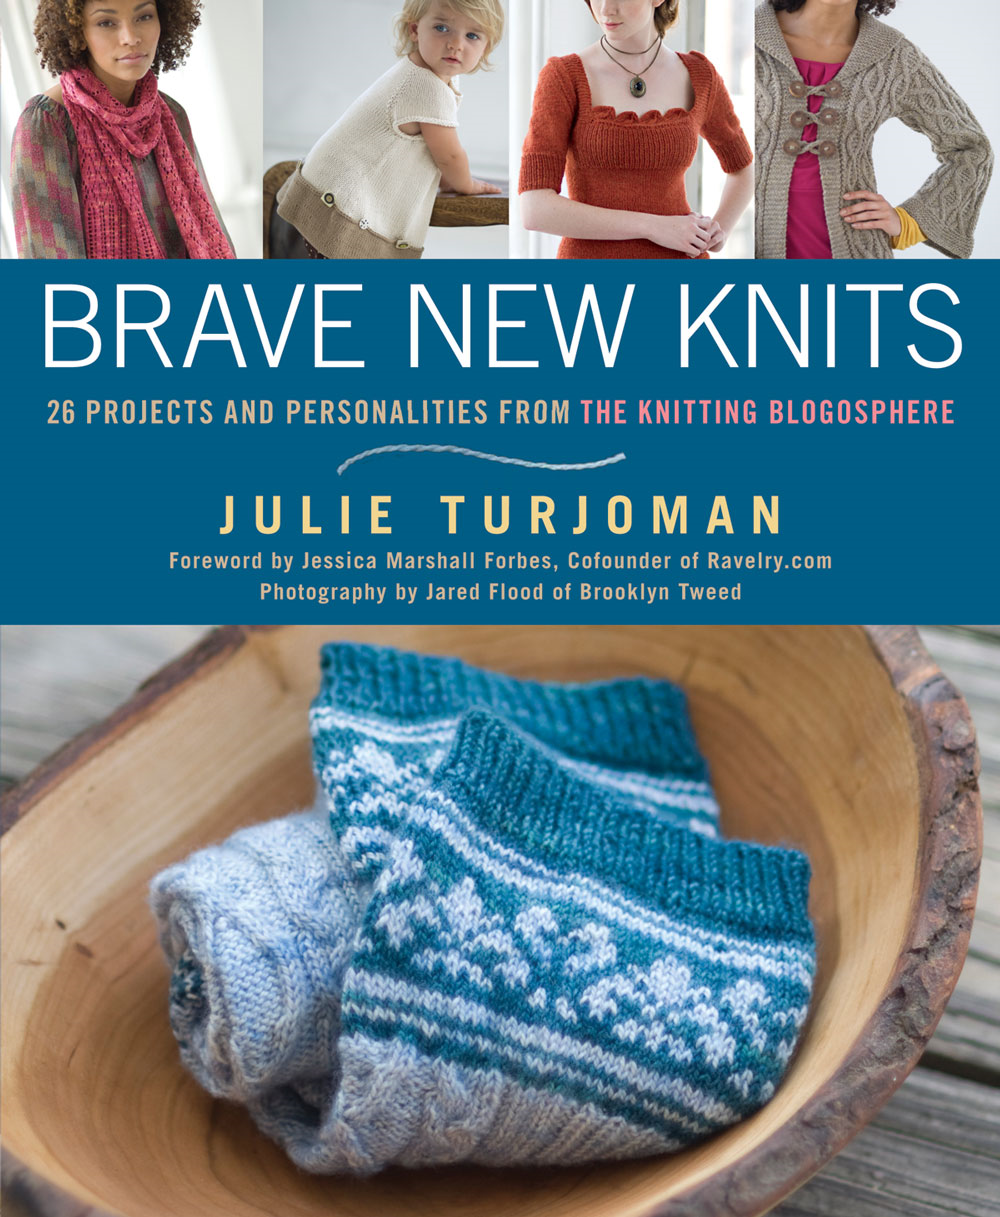 Brave New Knits: 26 Projects and Personalities from the Knitting Blogosphere By: Julie Turjoman